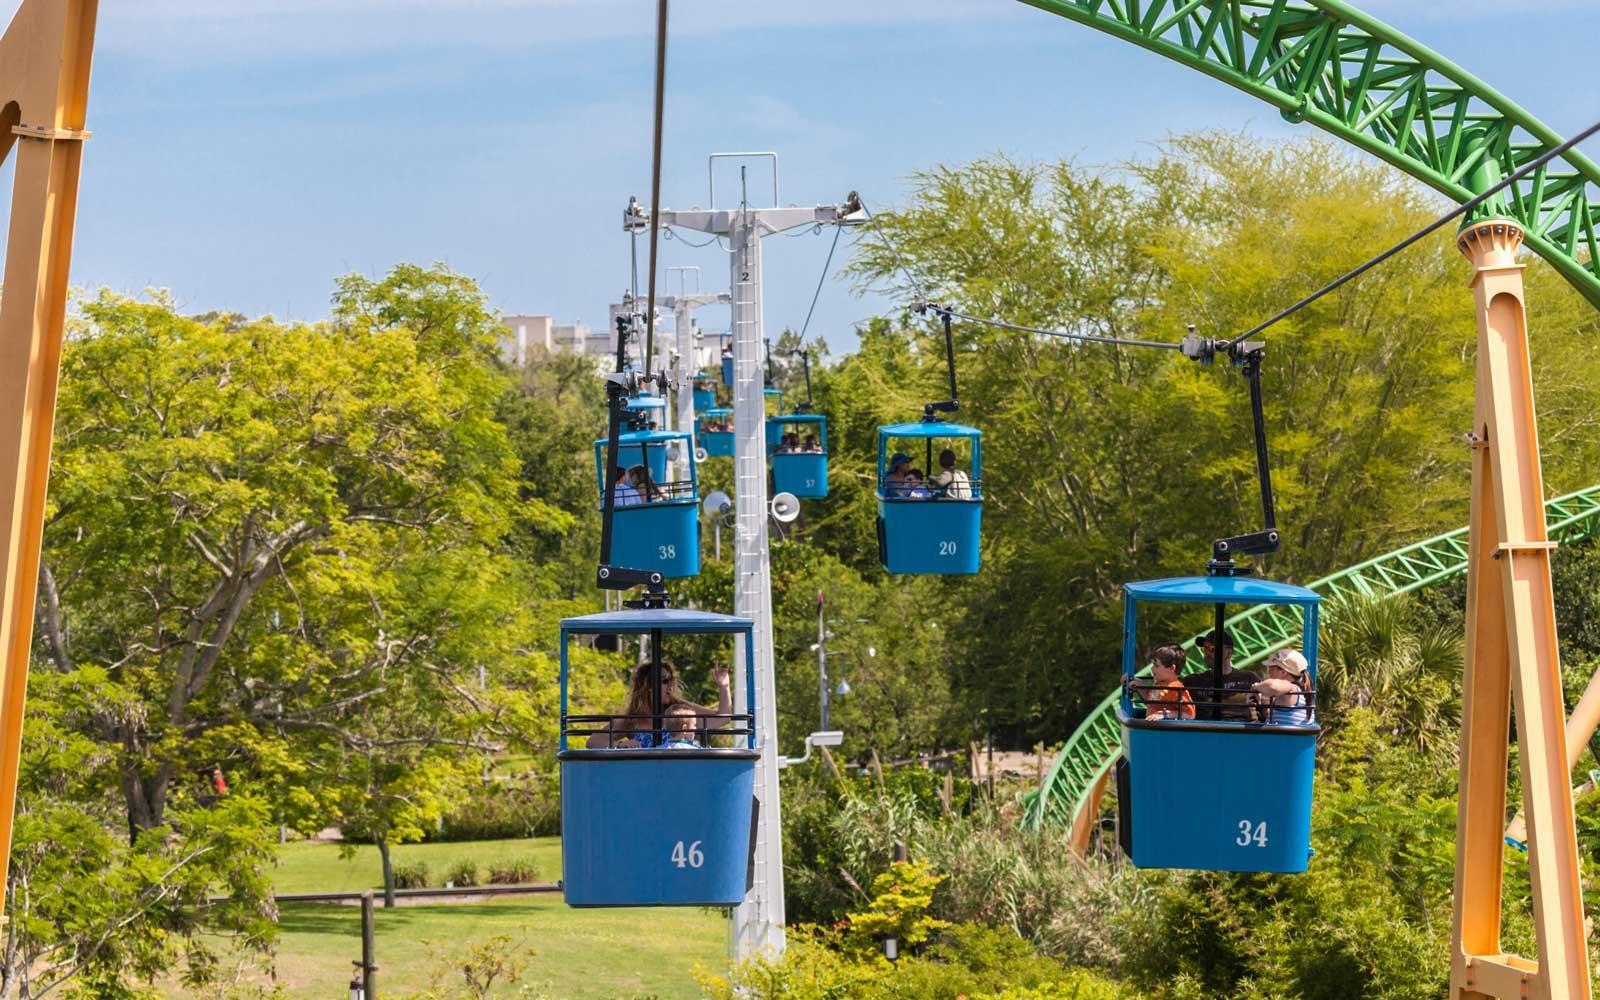 Transportation at Busch Gardens Tampa